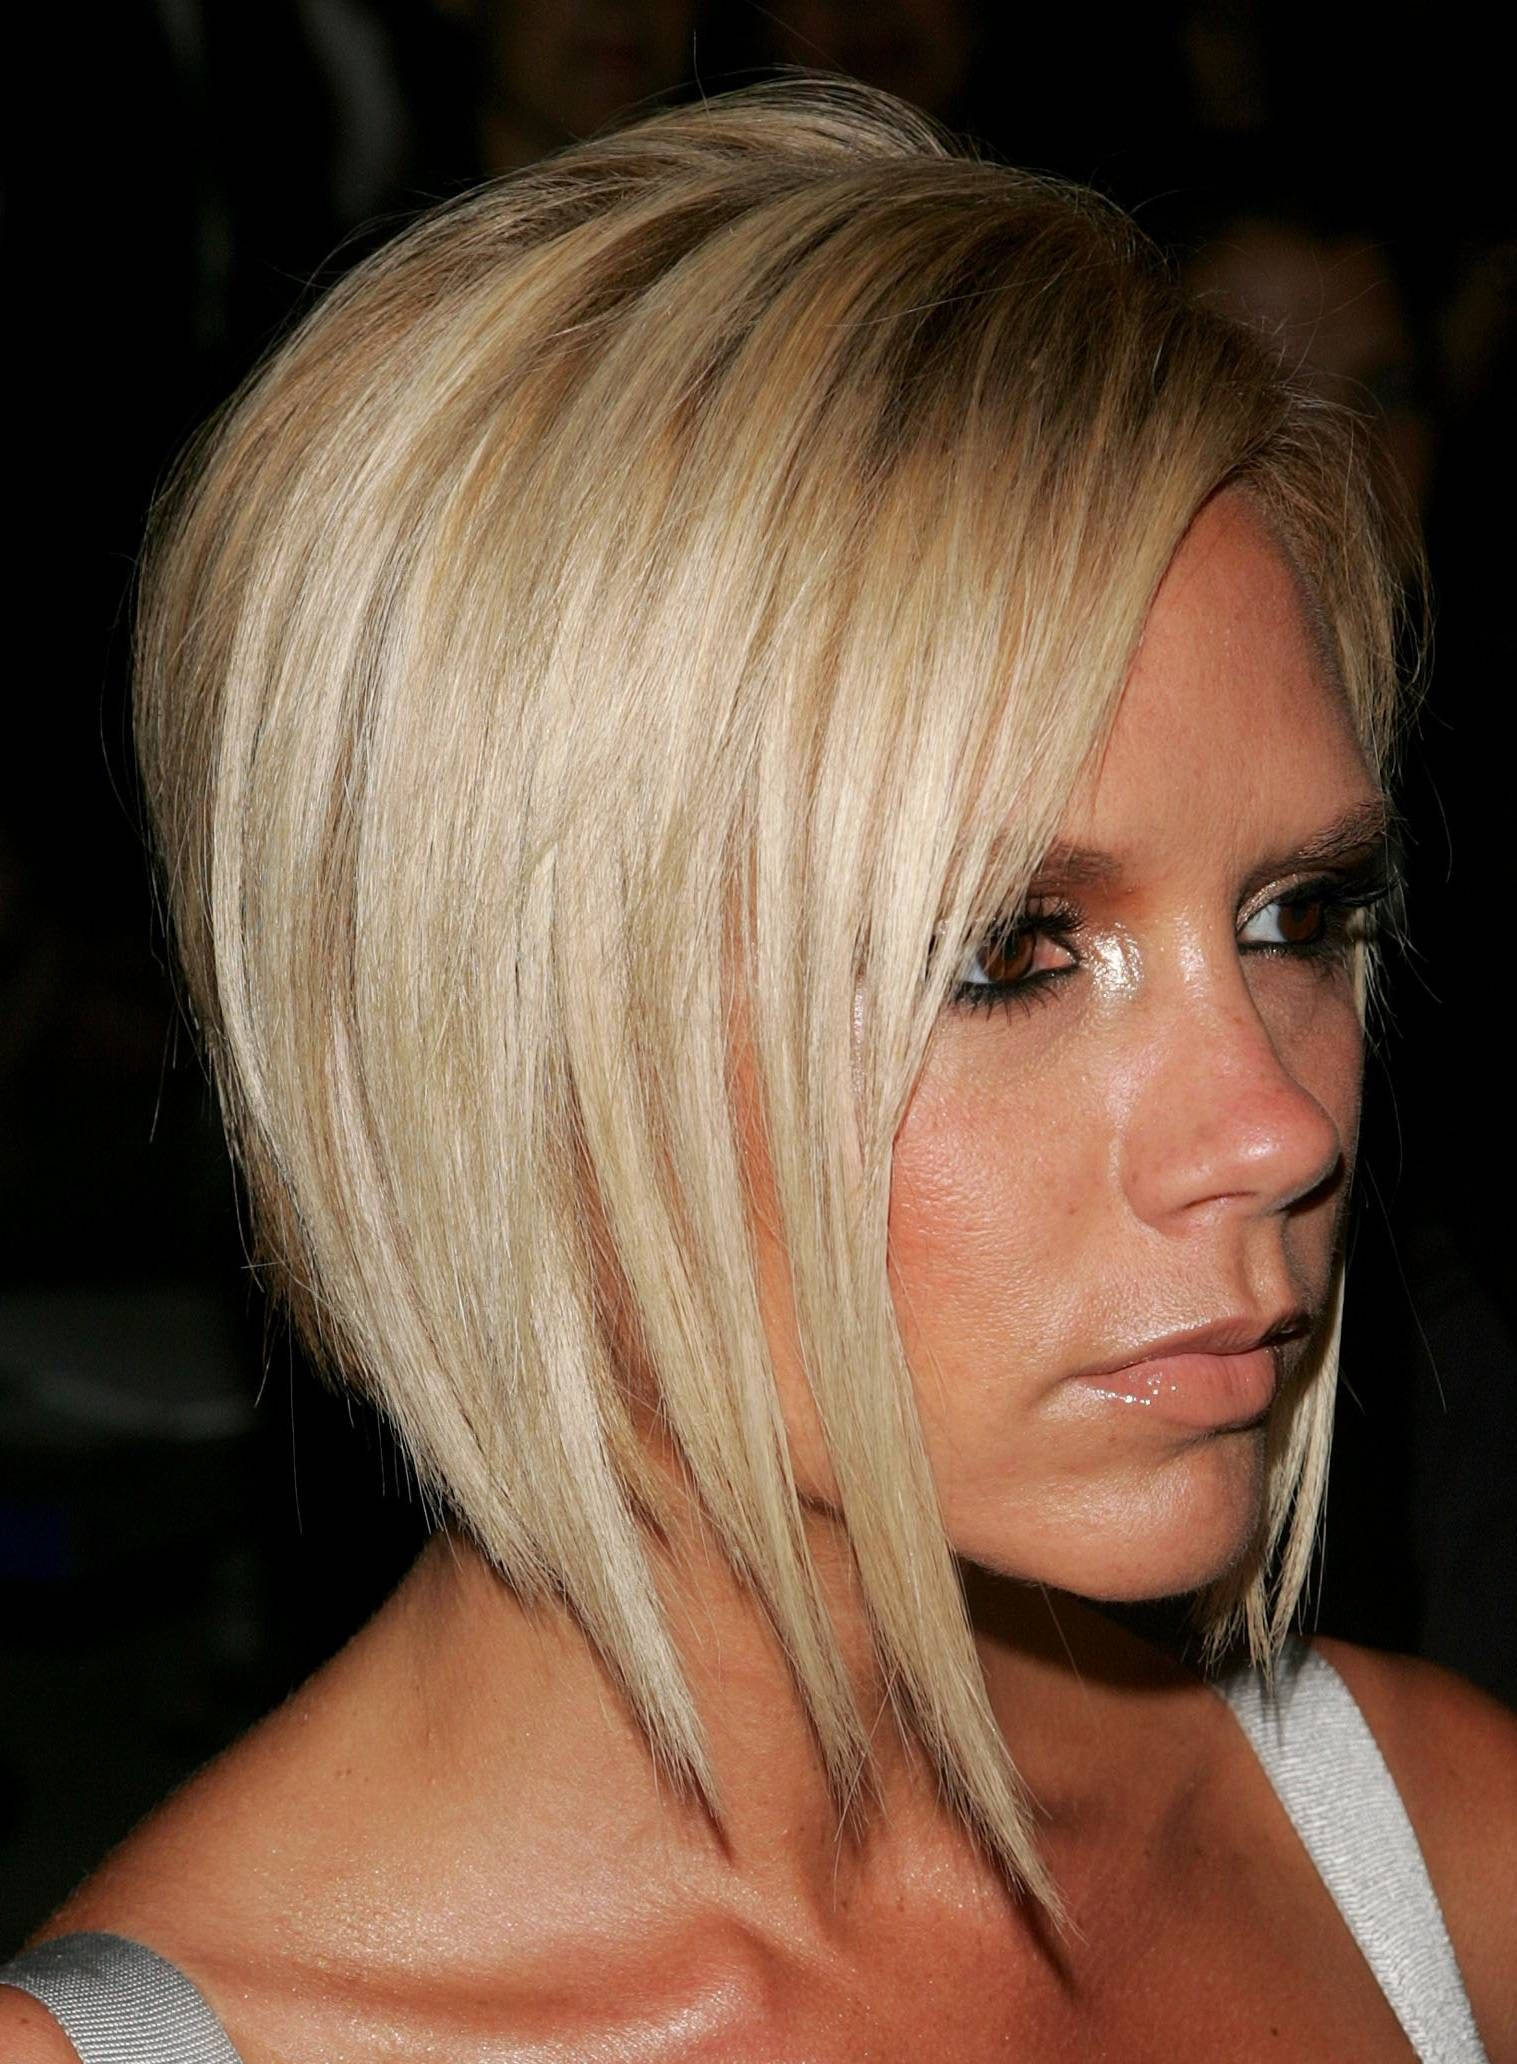 Pics photos victoria beckham bob haircut back view - Victoria Beckham Short Hairstyles Front And Back Is Also Available On This Page With Dark Brown Black Blonde Mixture Hair Color You Can Easily Get